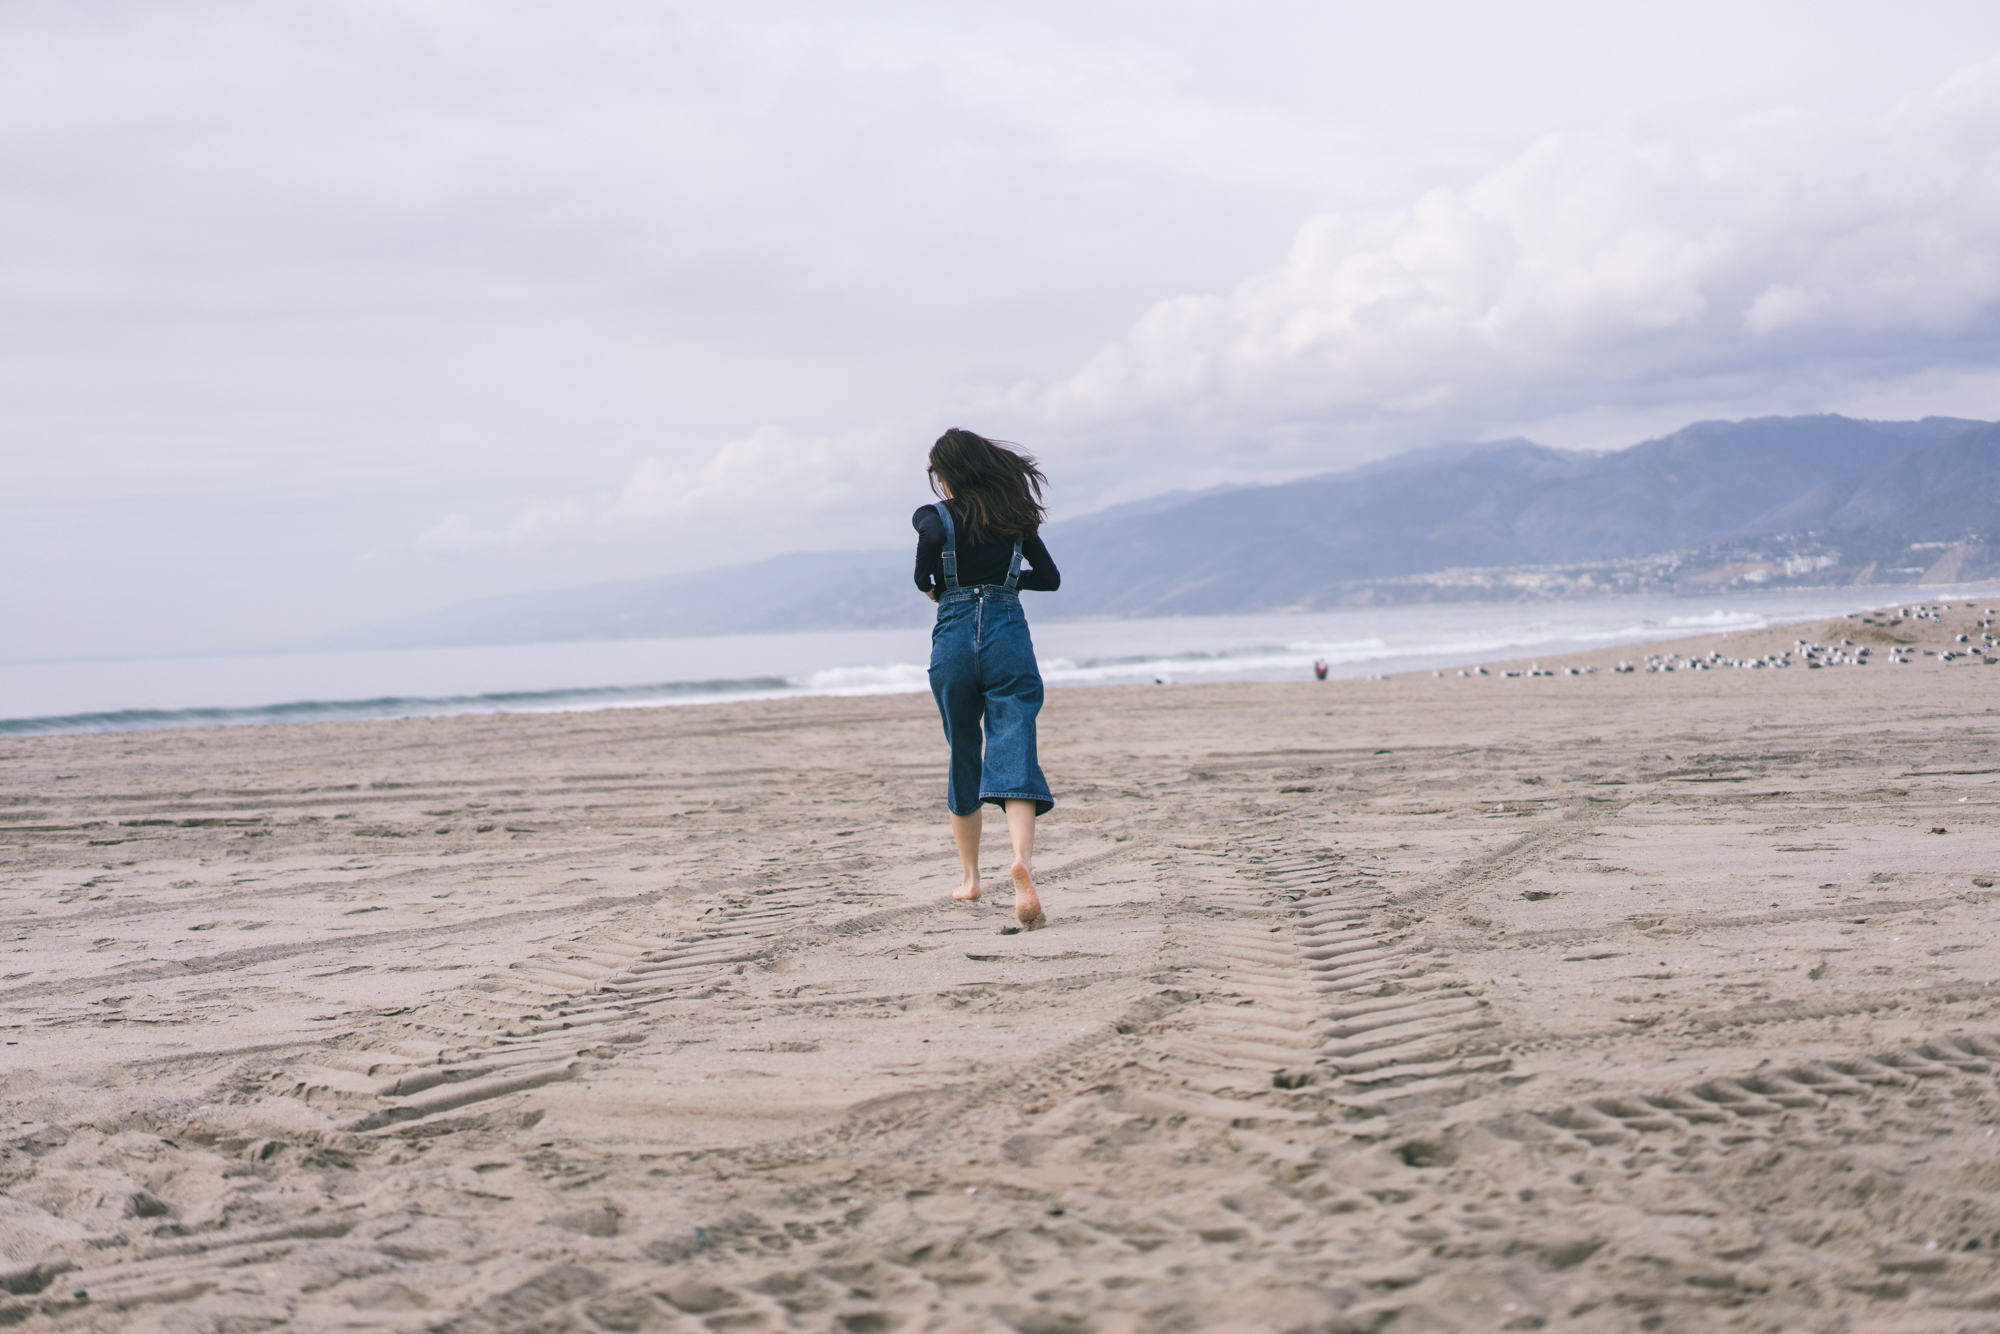 santa monica, beach, billurbasarontheway, topshop, cos, anthropologie, los angeles, california, billurlosangelesdiary, travel, billur saatci, off ne giysem, offnereyegitsem, lifestyle blogger, turkish style blogger,